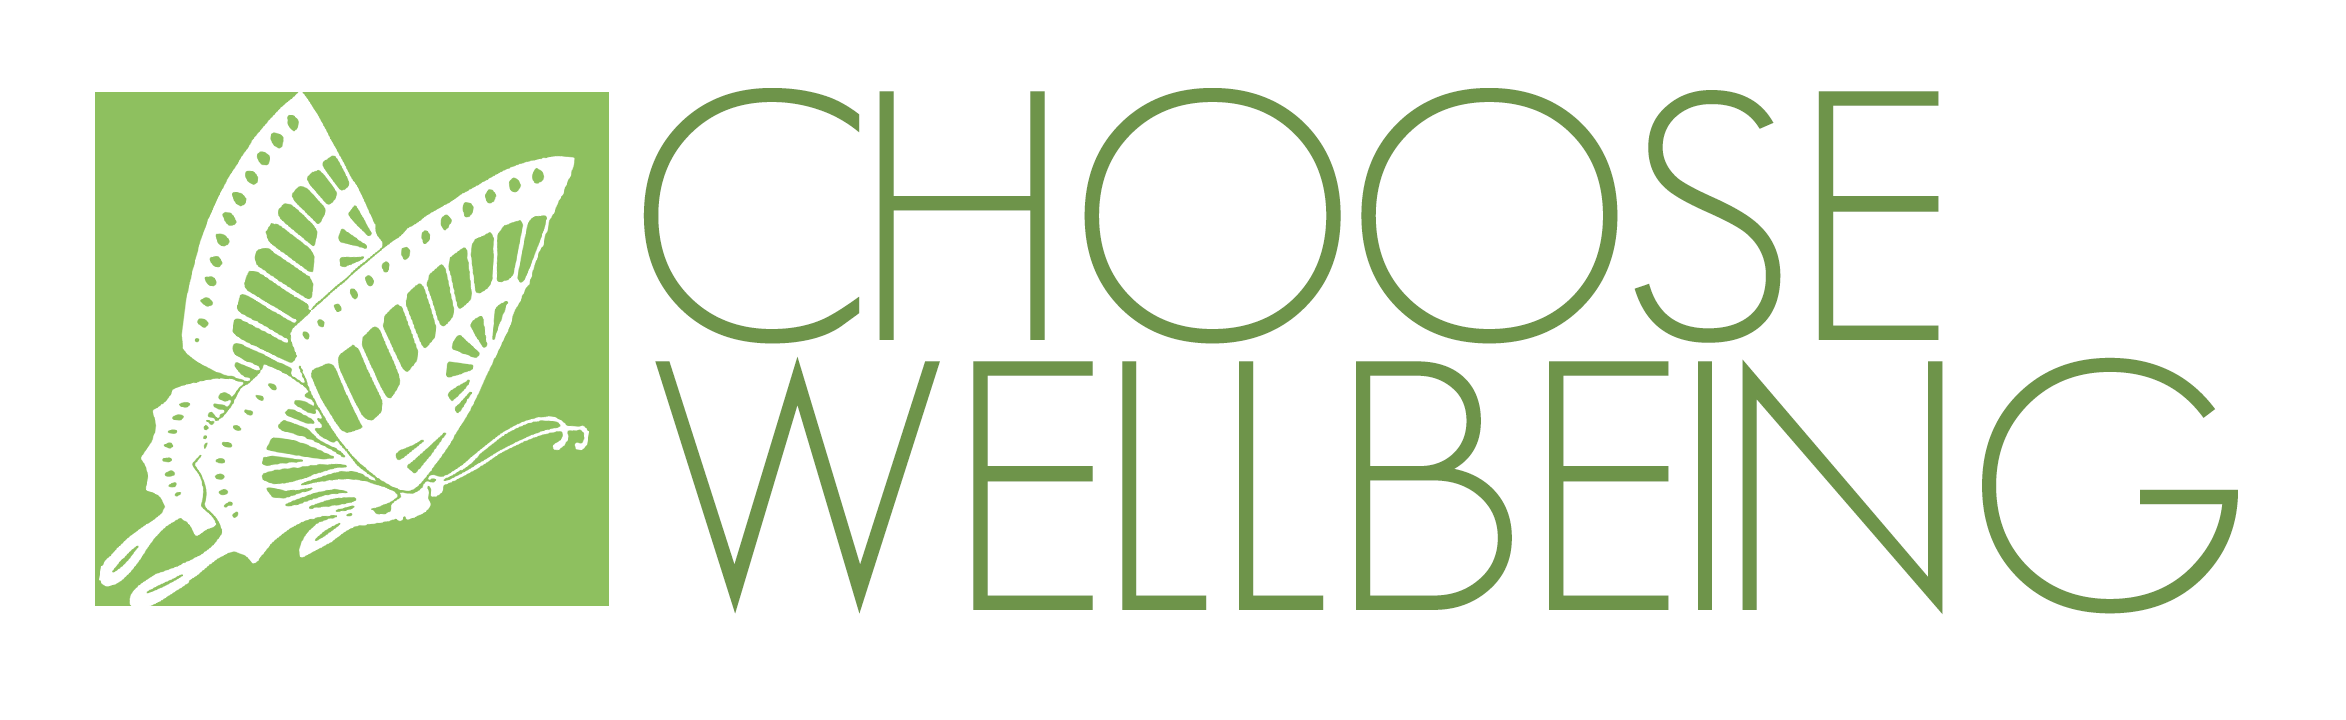 Choosewellbeing company logo